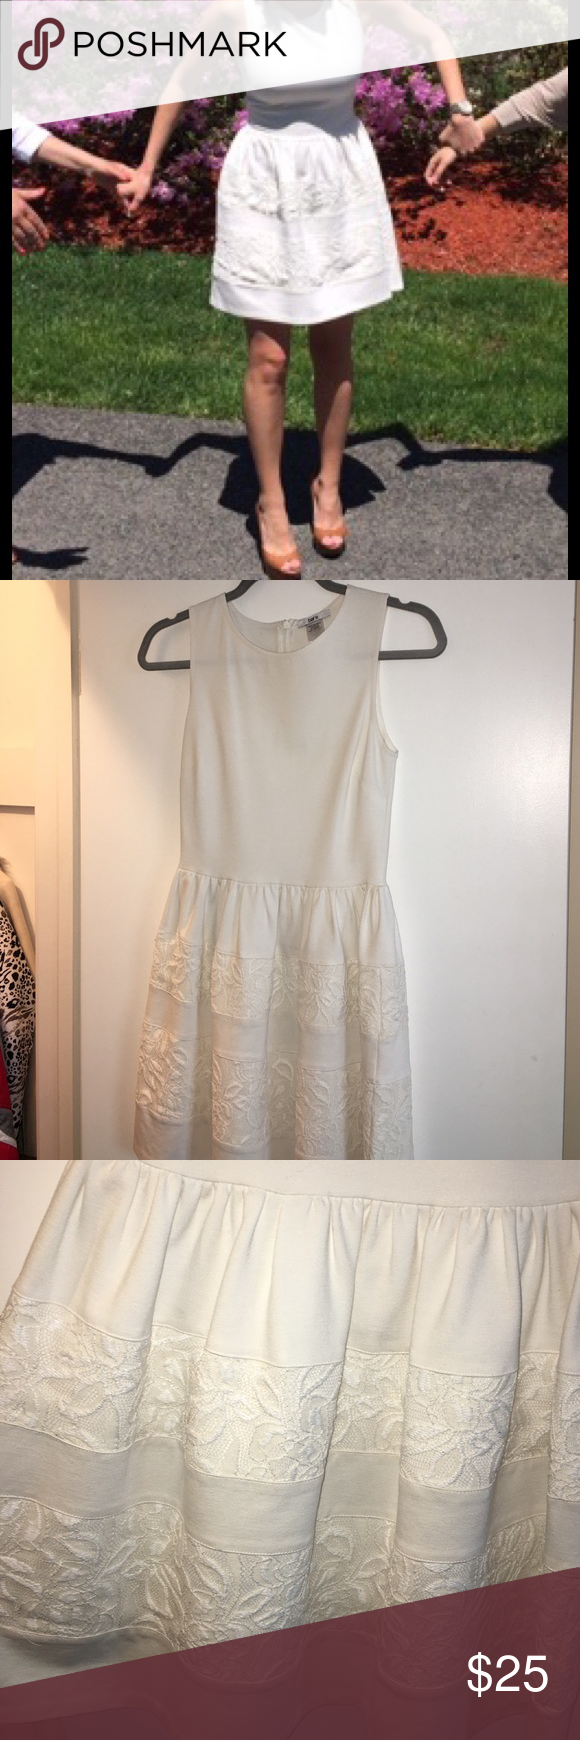 Bar III Dress Off white. Zips up with back. Smallest mark on chest. Can be removed with tide pen or shout wipe (I don't have any more or else I'd do it myself). I wore this once to graduate college in. Super cute with tan shoes ( I wore a wedge). Falls above the knee as seen in photo Bar III Dresses